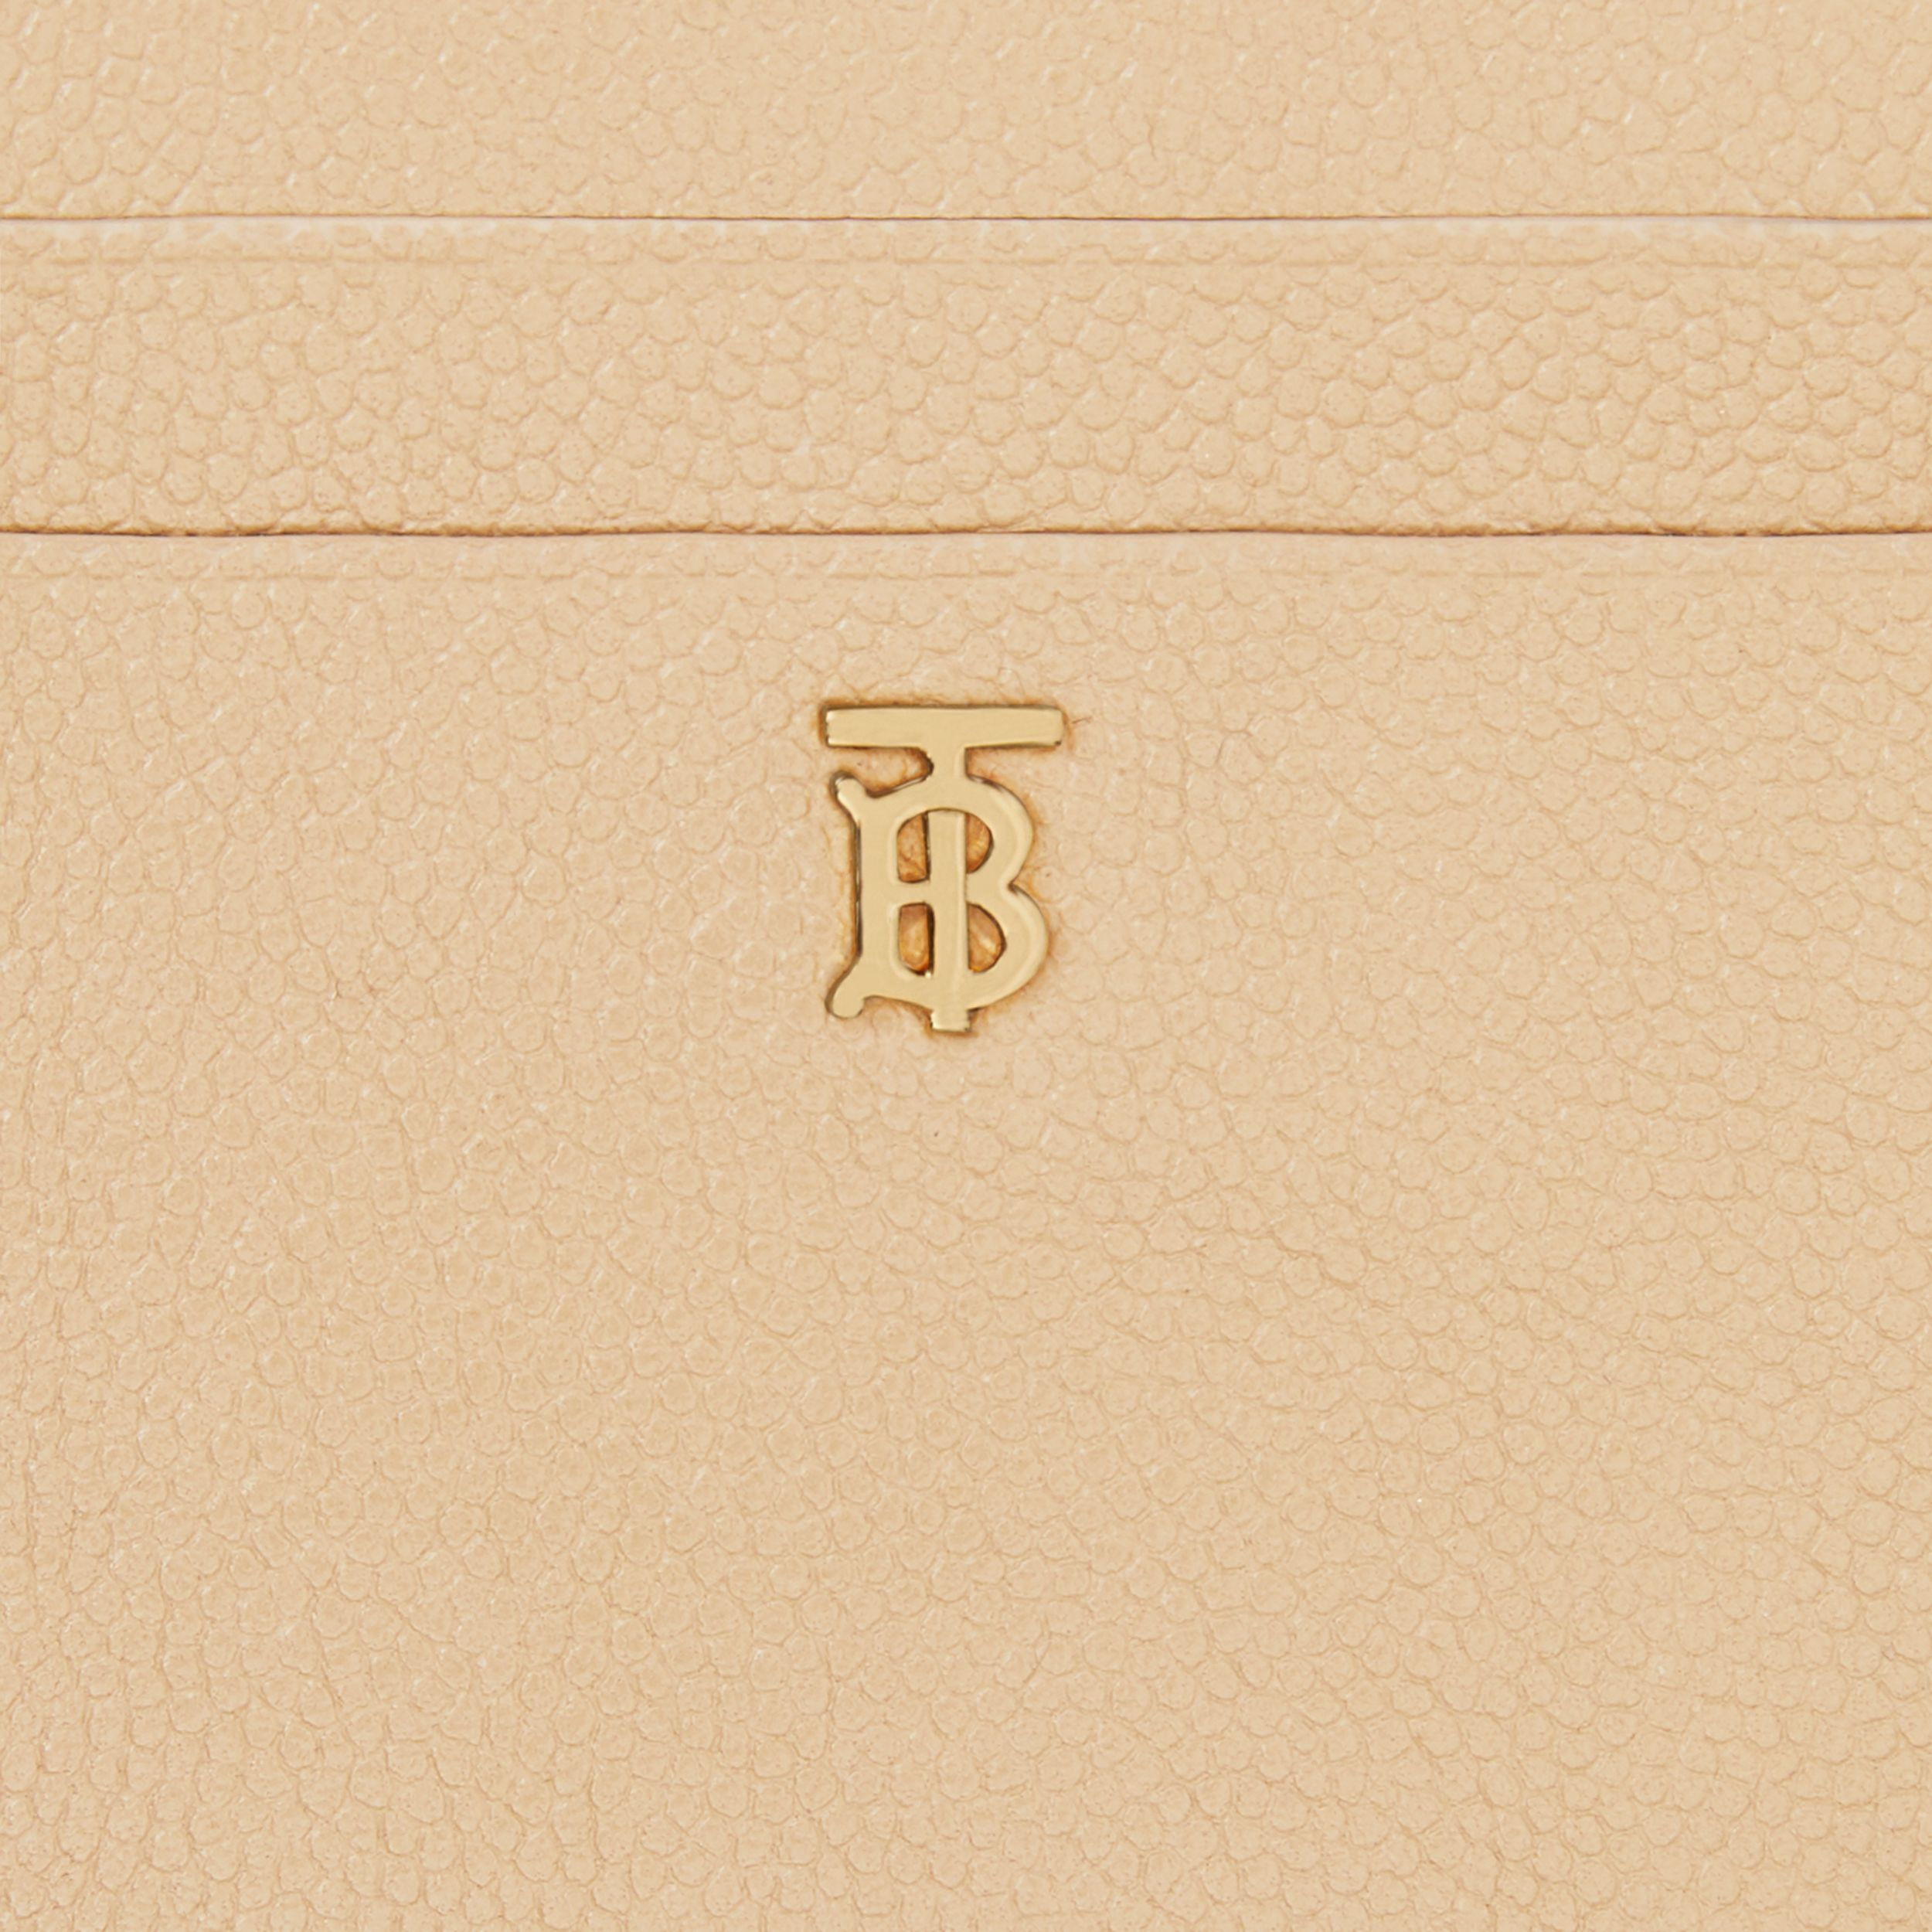 Monogram Motif Grainy Leather Zip Card Case in Archive Beige - Women | Burberry - 2